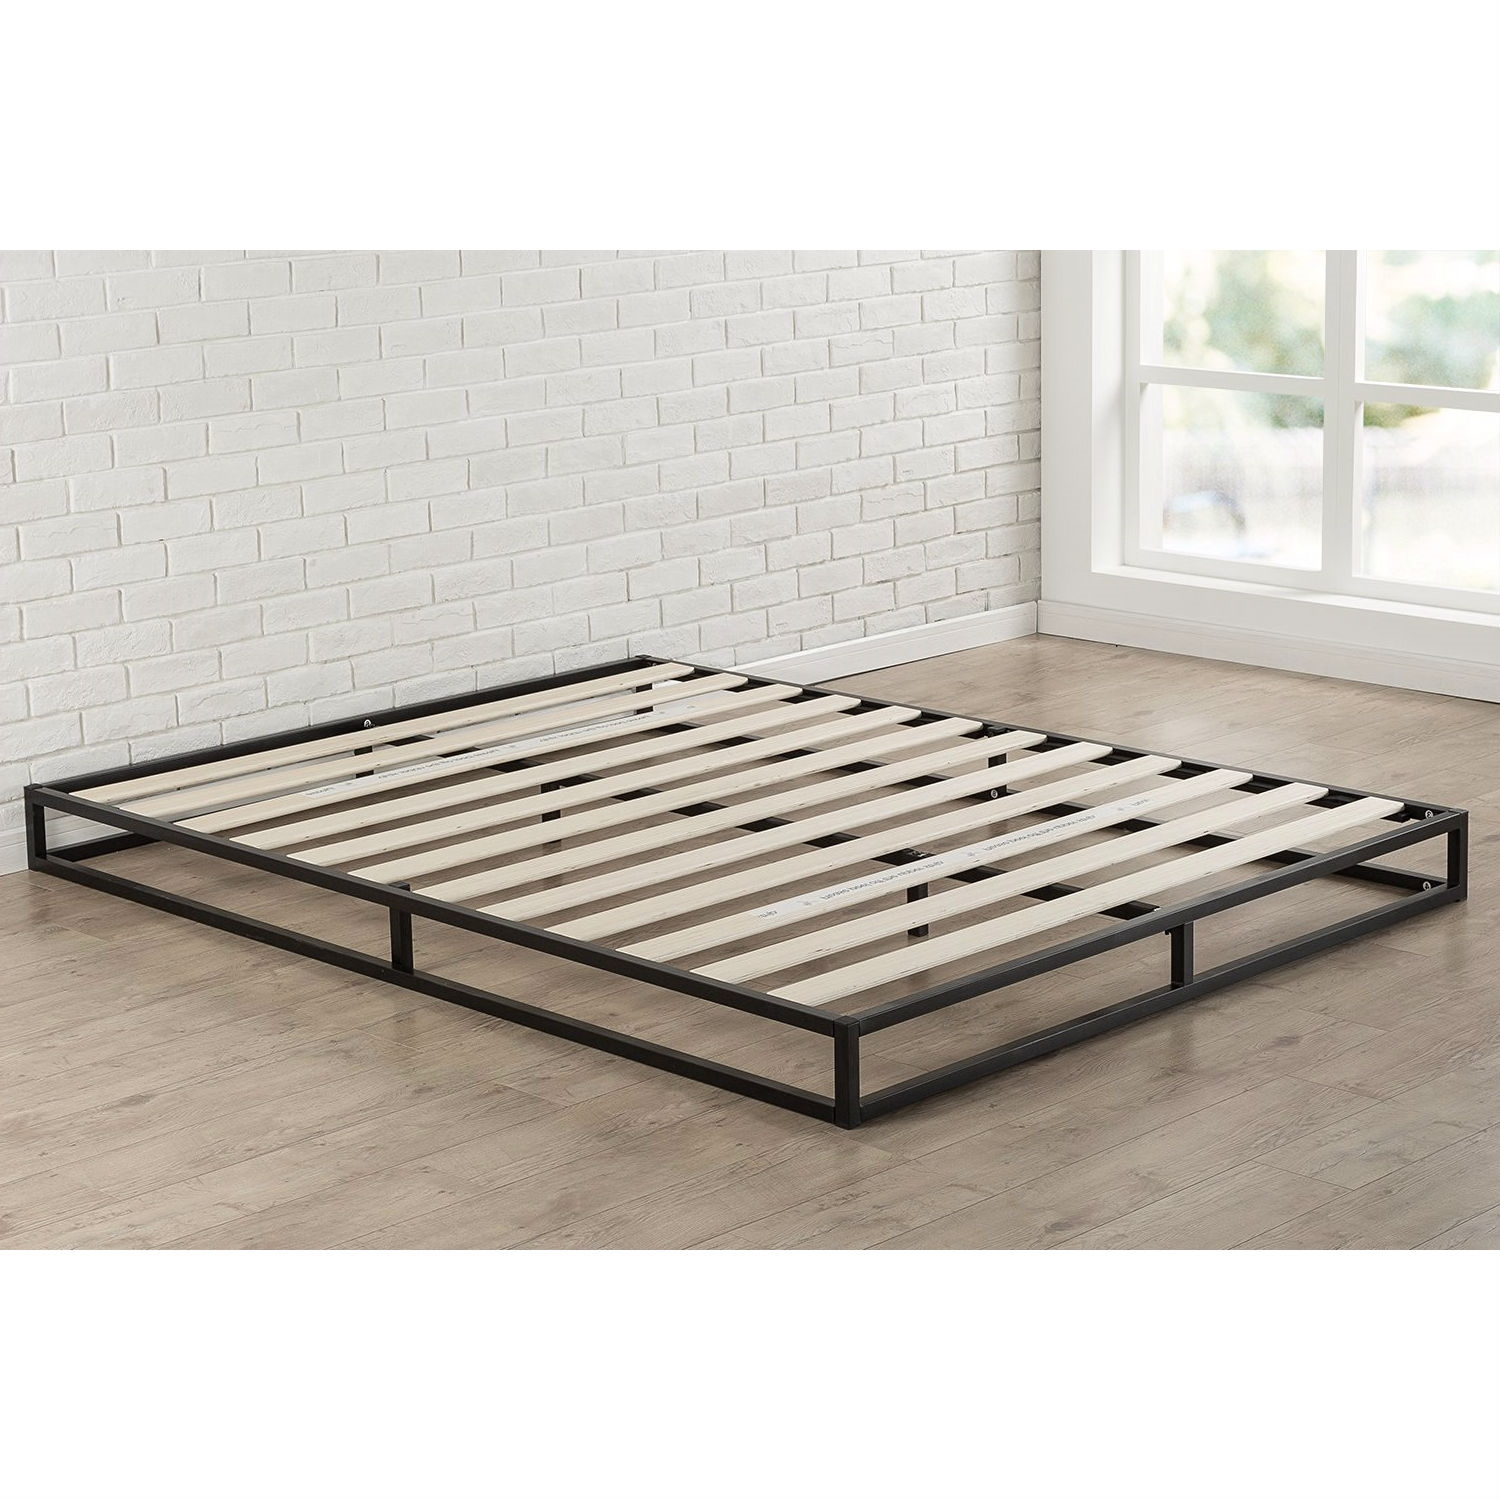 Twin 6inch Low Profile Platform Bed Frame with Modern Wood Slats